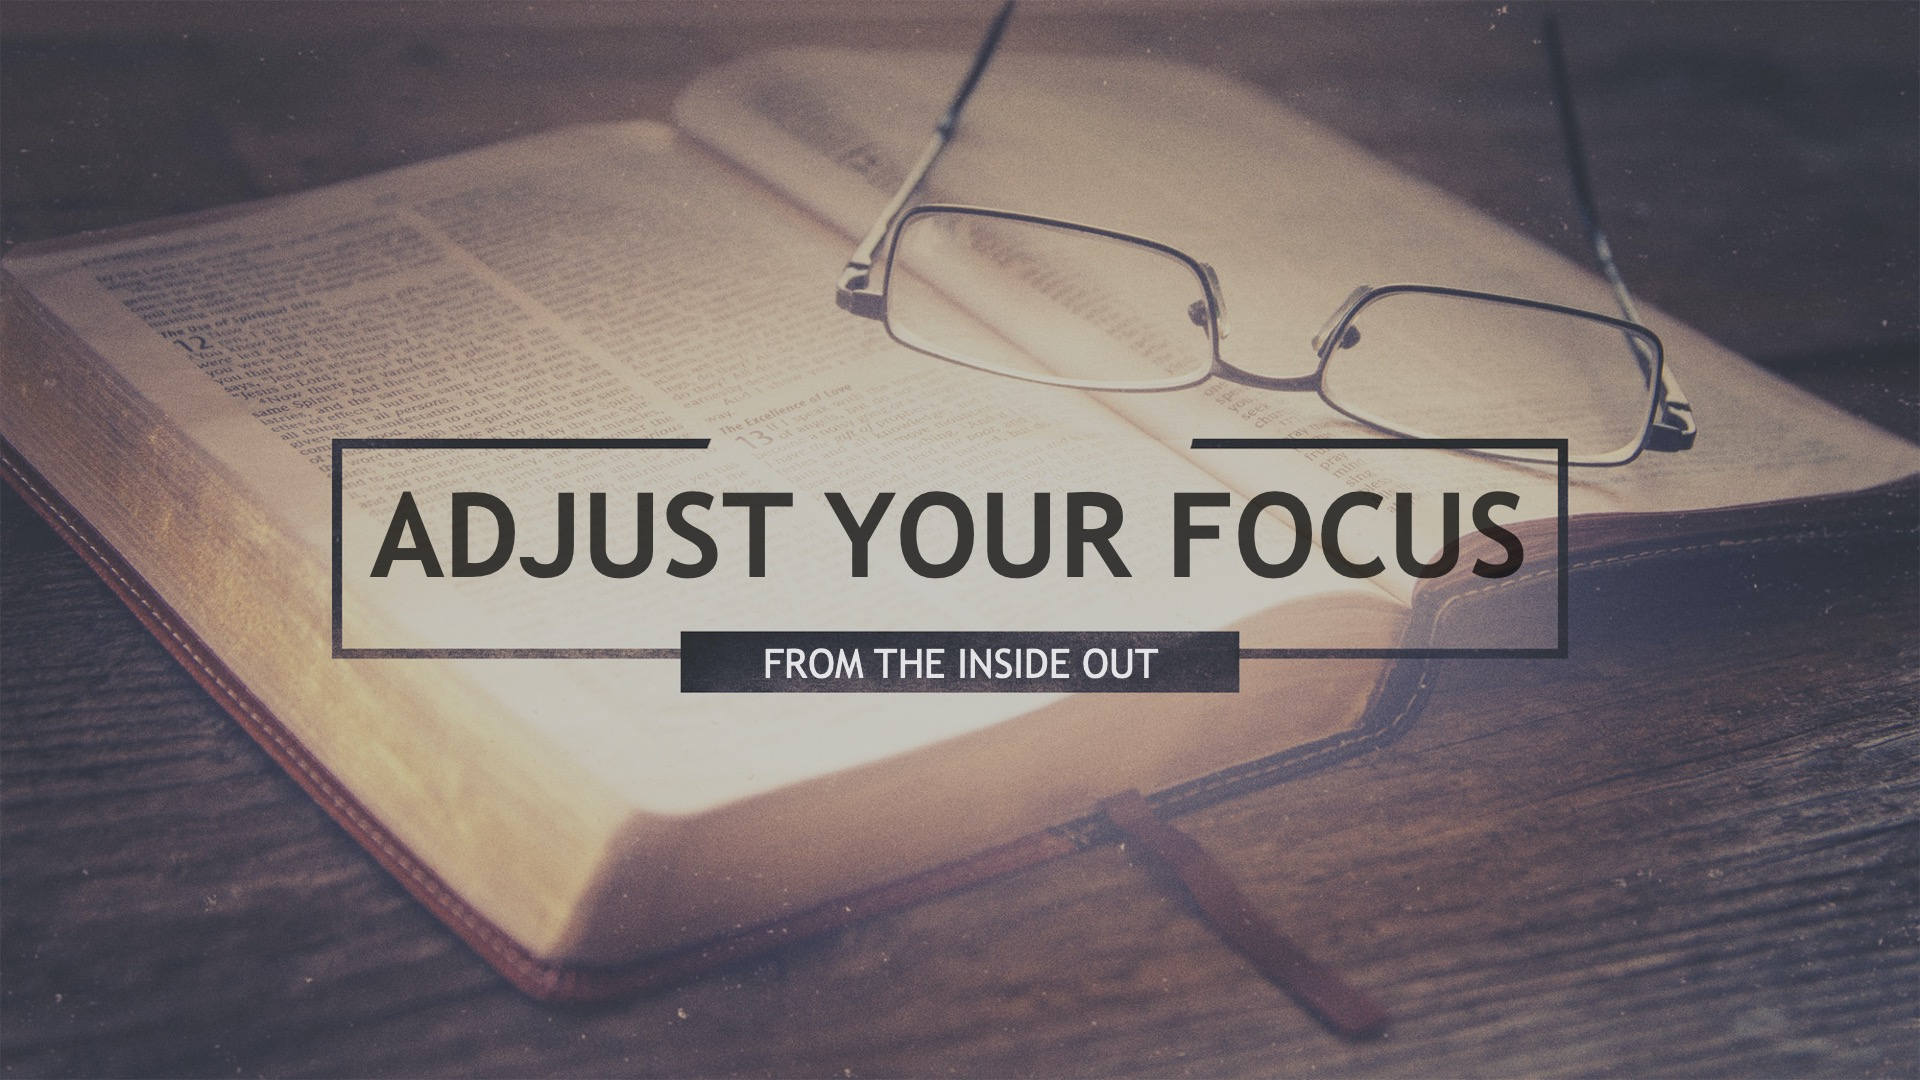 Adjust Your Focus From The Inside Out